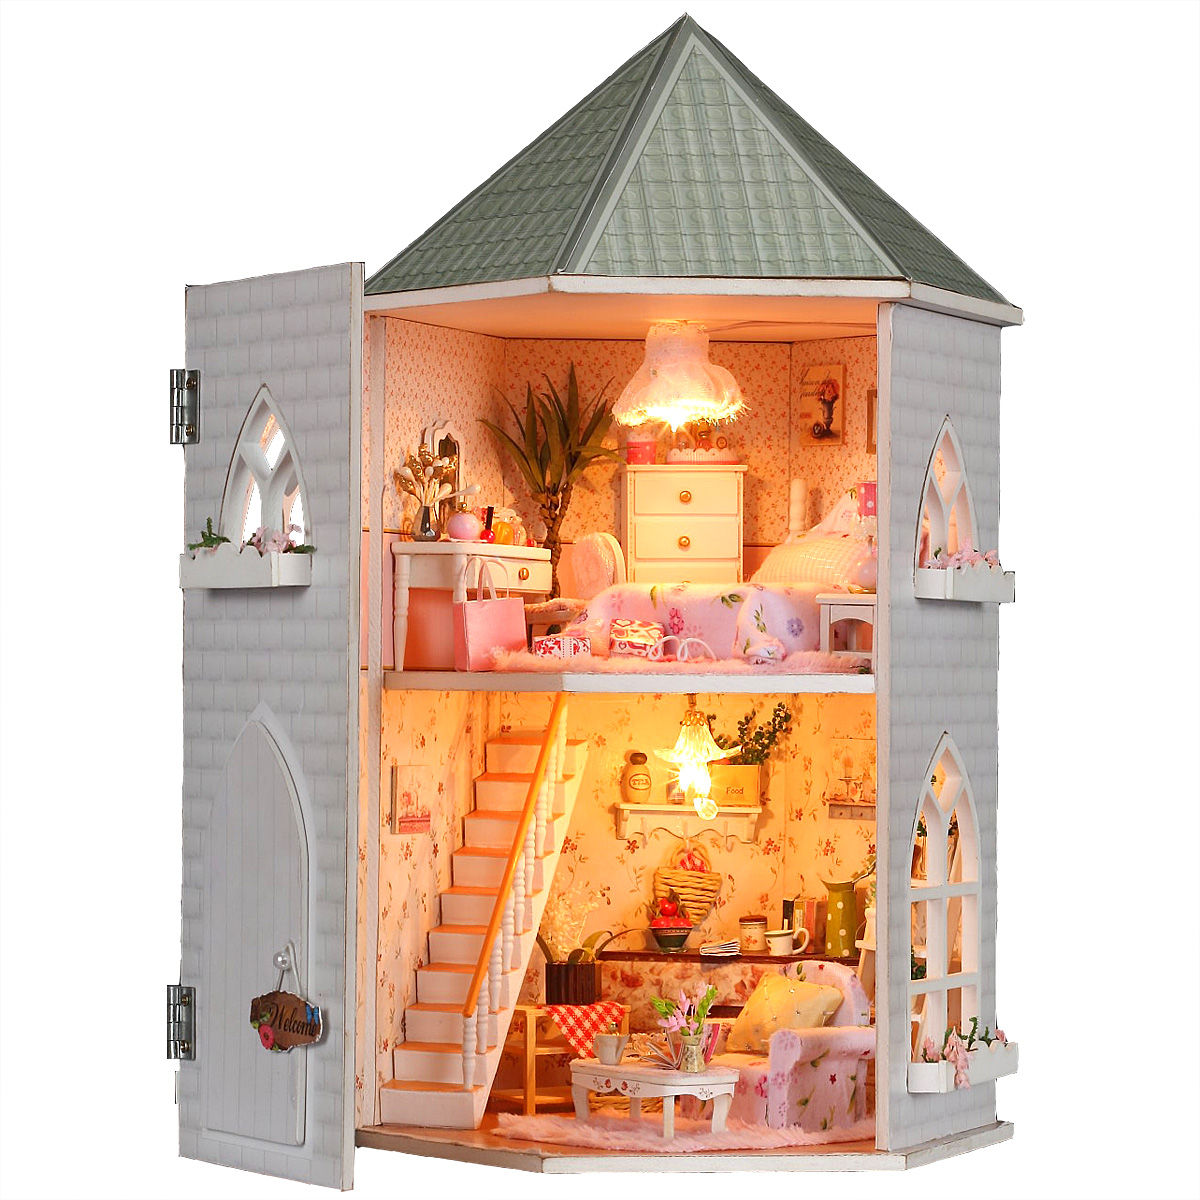 wooden toys doll house miniature educational diy